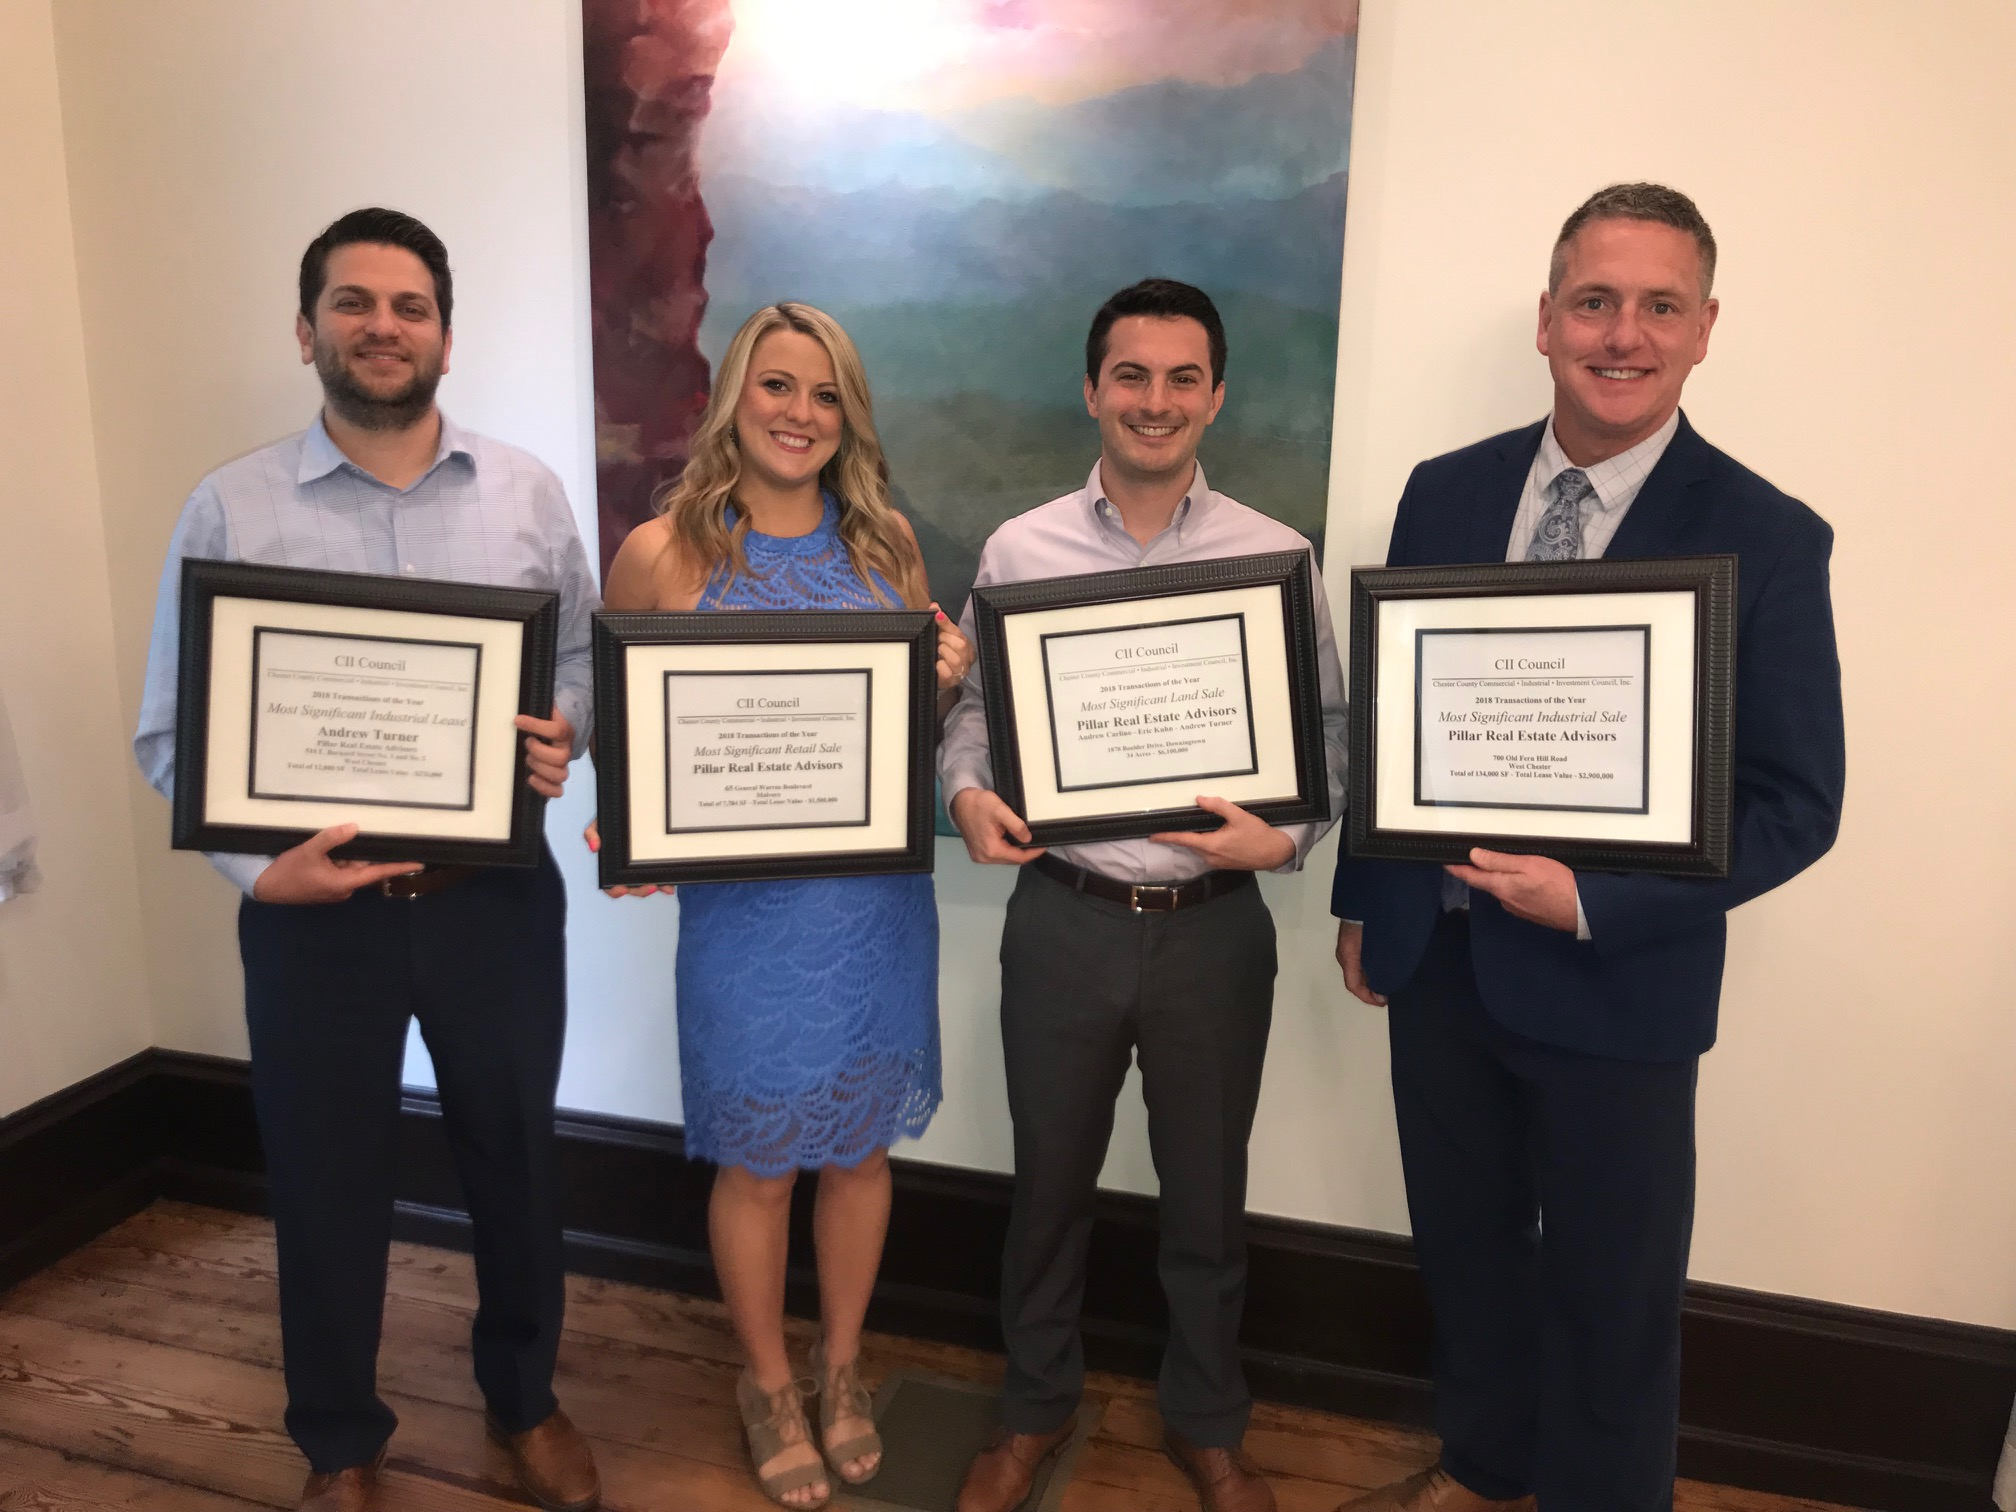 West Chester's Pillar Real Estate Advisors Wins Four of CII Council's Nine Most Significant Deal Awards